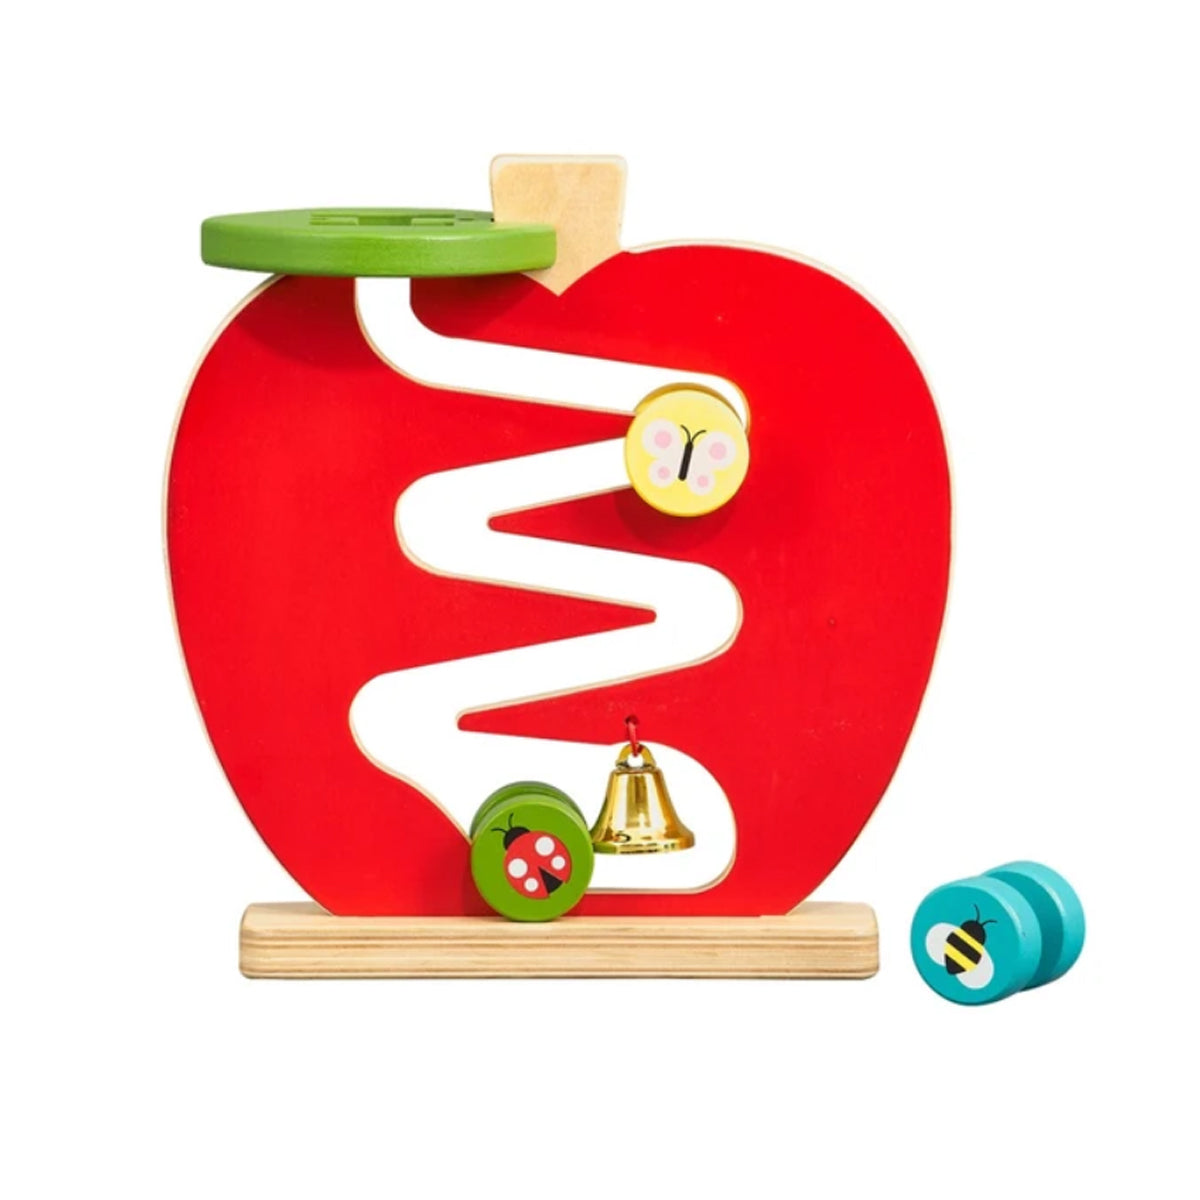 Apple Run Wooden Play Set